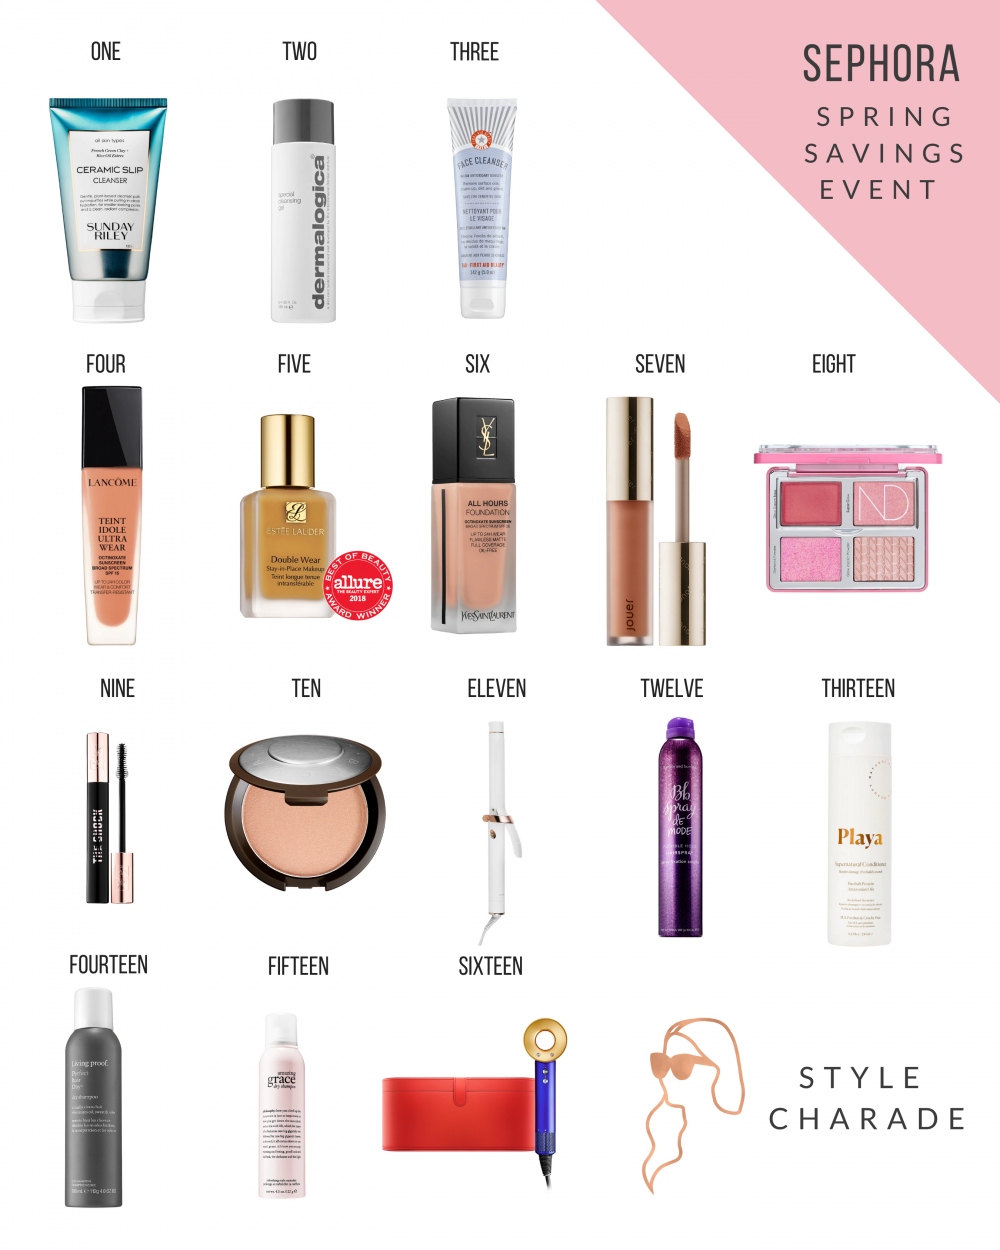 Sephora Spring Savings Event